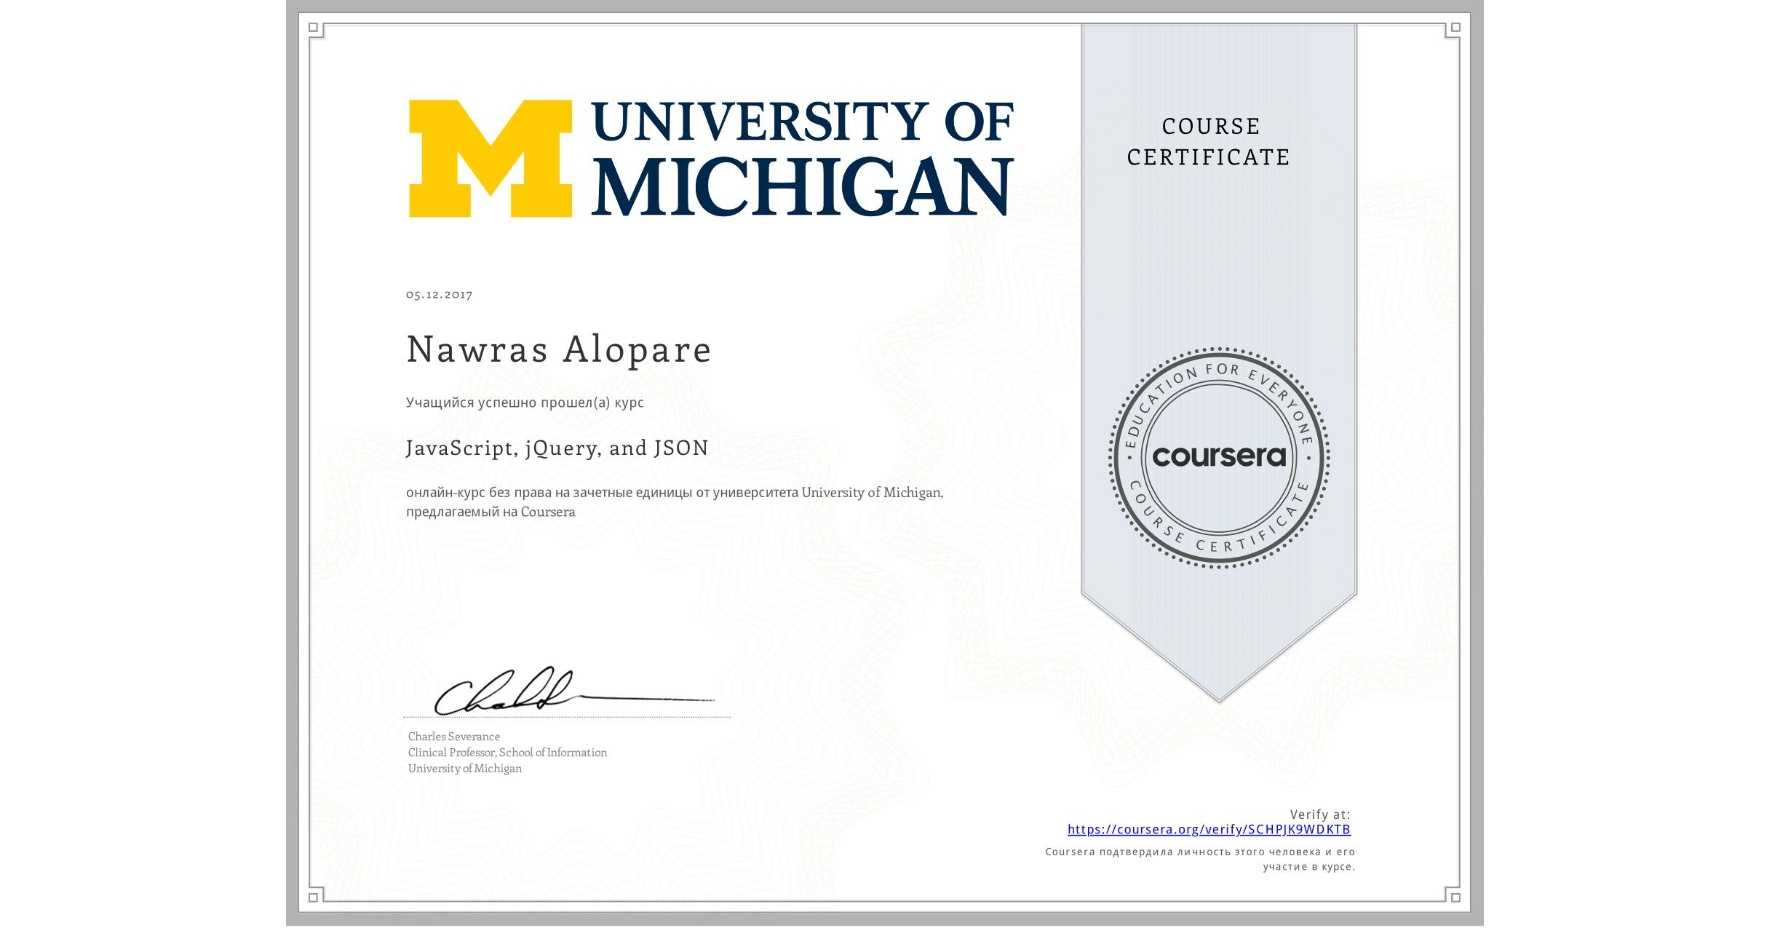 View certificate for Nawras Alopare, JavaScript, jQuery, and JSON, an online non-credit course authorized by University of Michigan and offered through Coursera